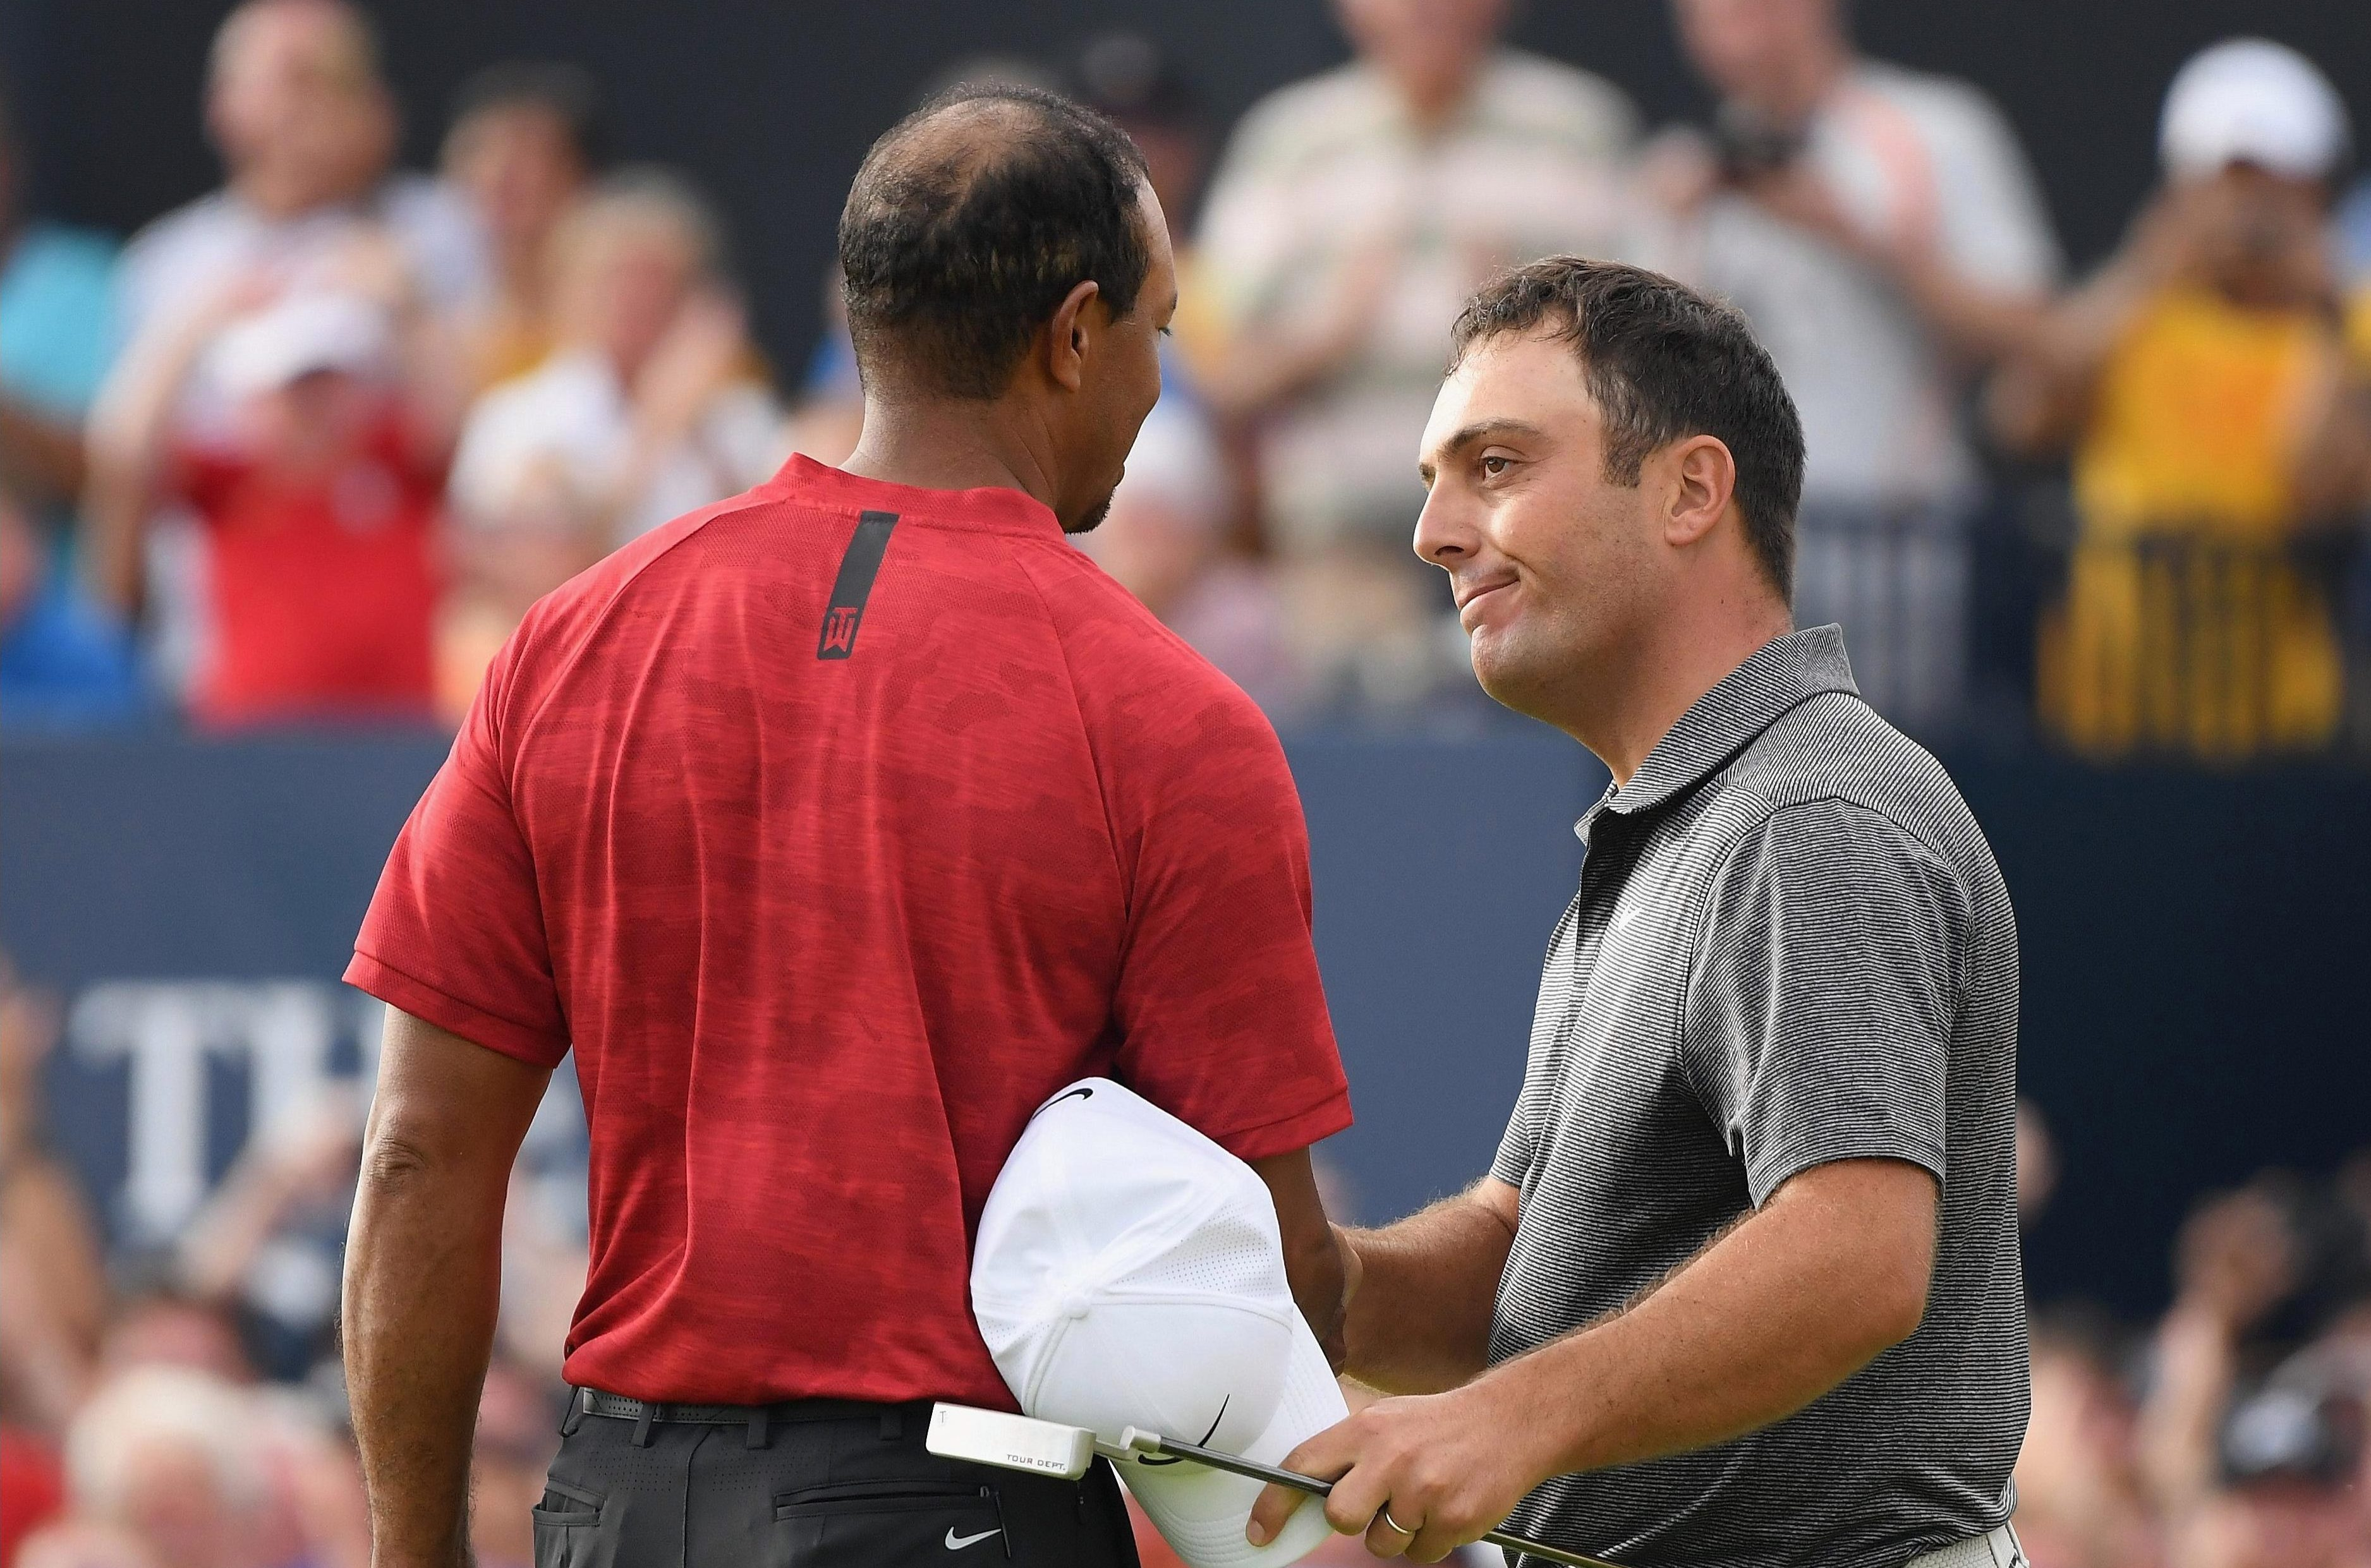 Francesco Molinari, Woods' playing partner on the final day, went on to claim the Claret Jug